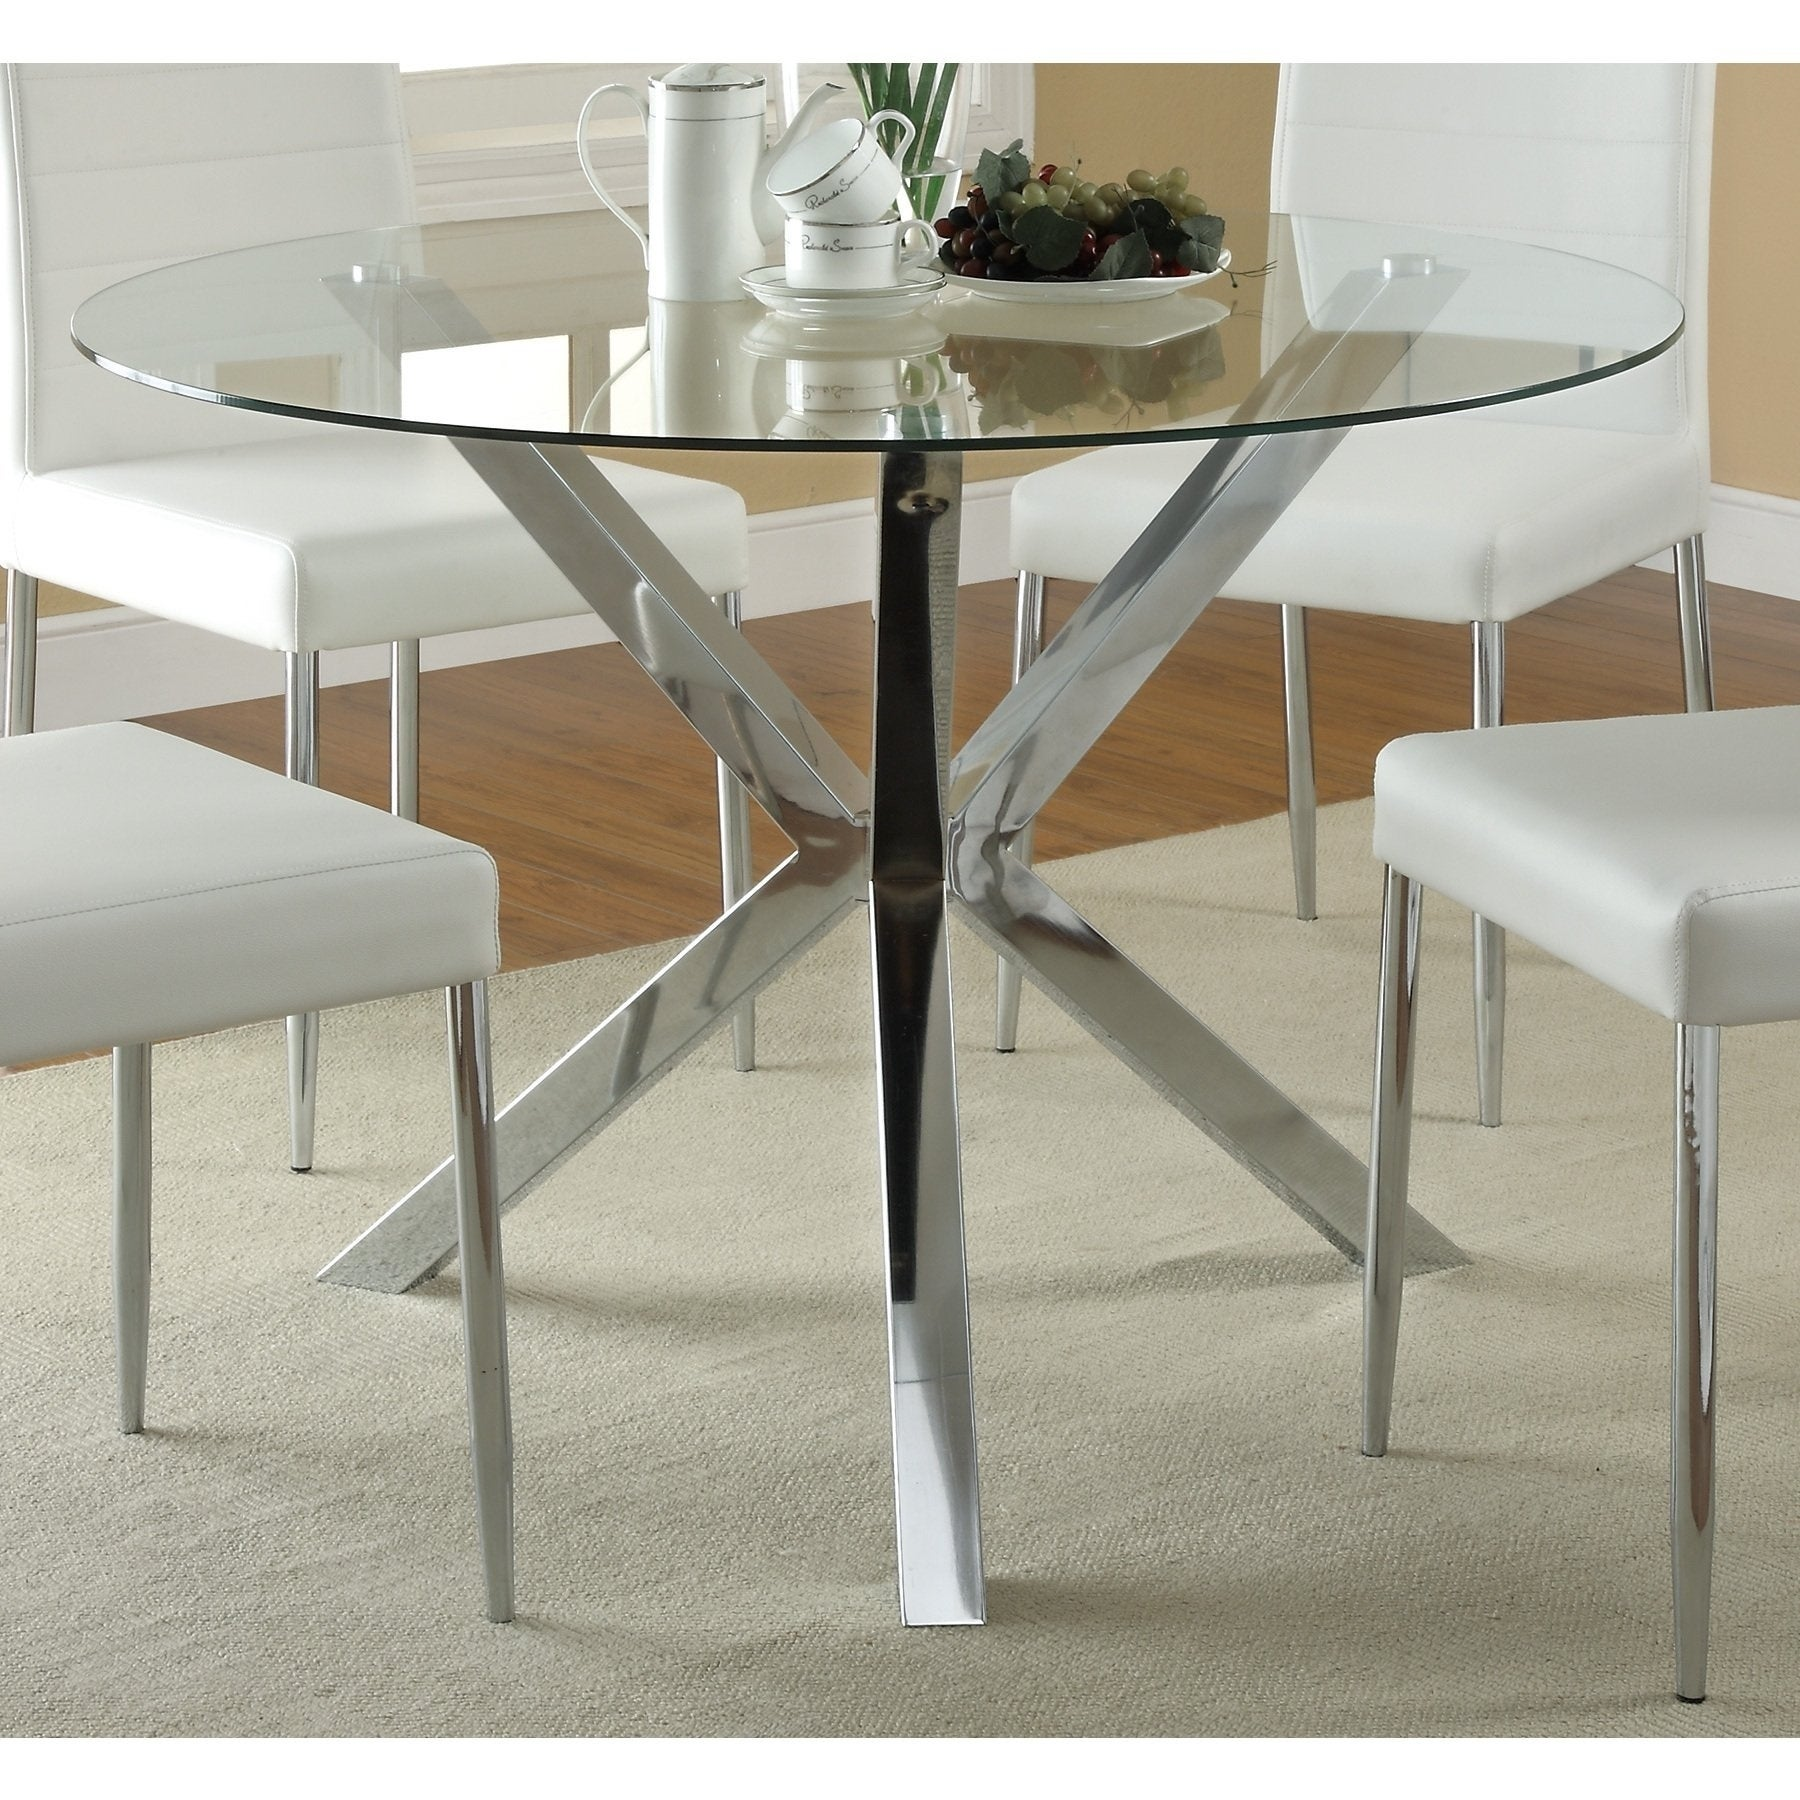 Shop Coaster Company Chrome Glass Top Dining Table Free Shipping - Glass-topped-dining-room-tables